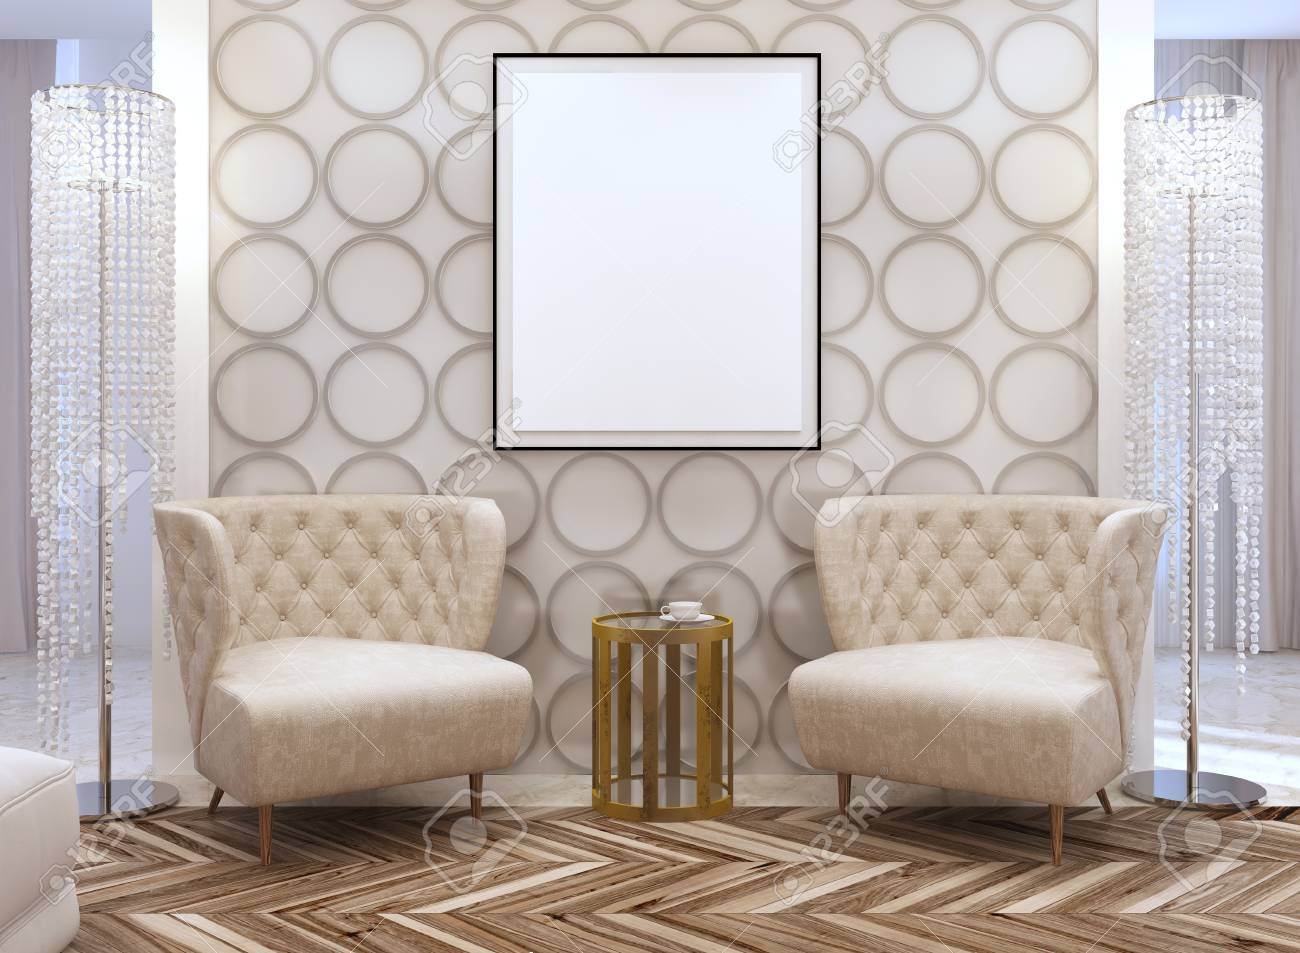 Seating area in the living room in the style of art Deco. Designer..